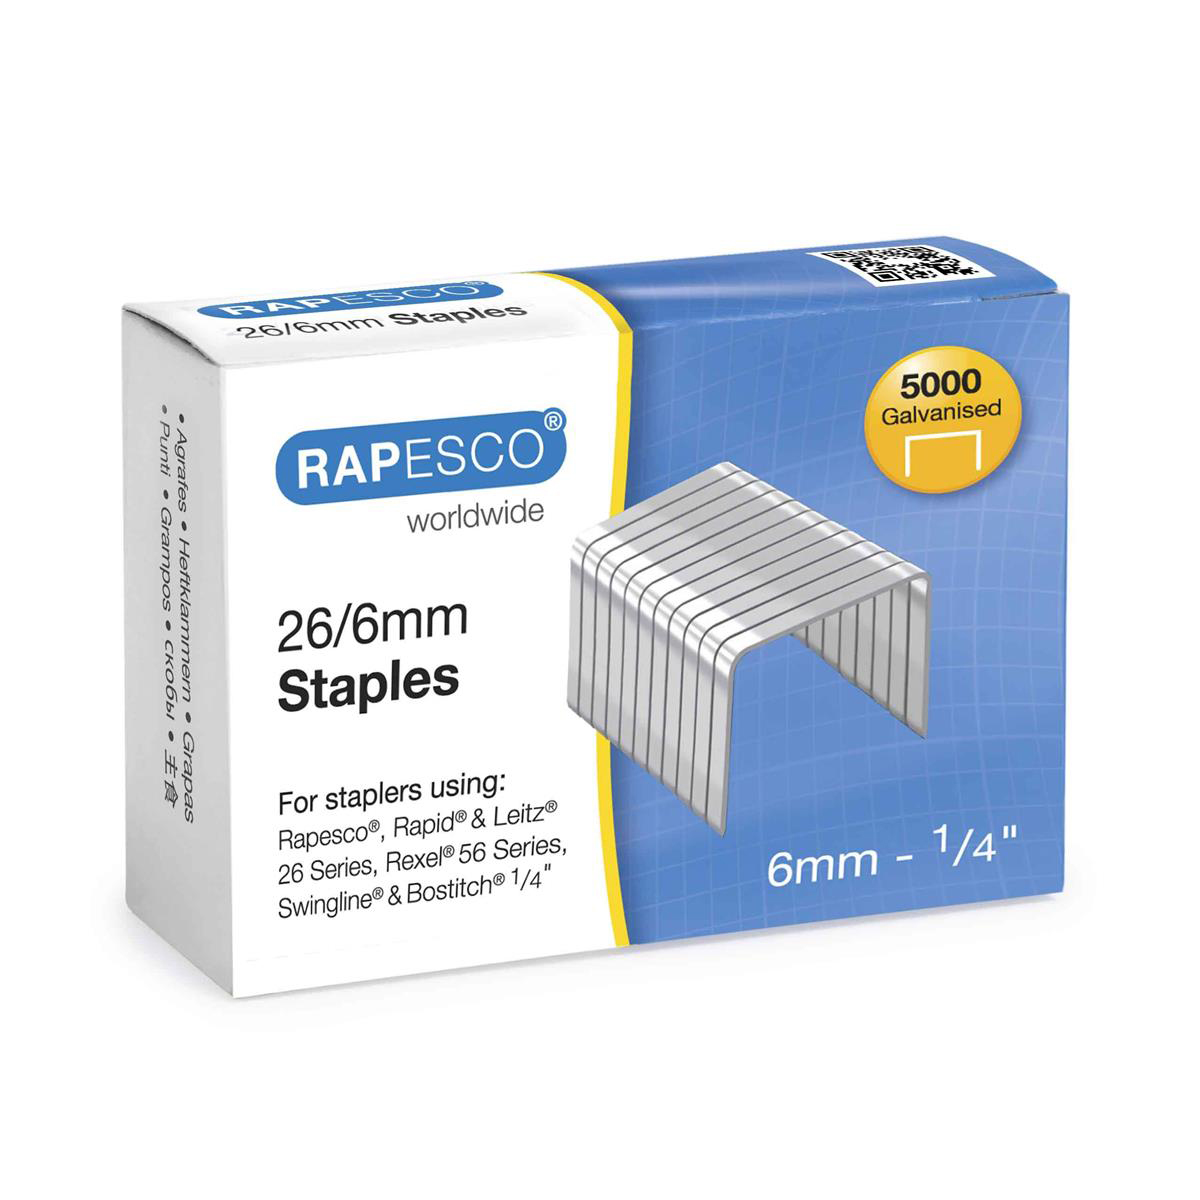 Rapesco Staples 26/6mm Ref S11662Z3 Pack 5000